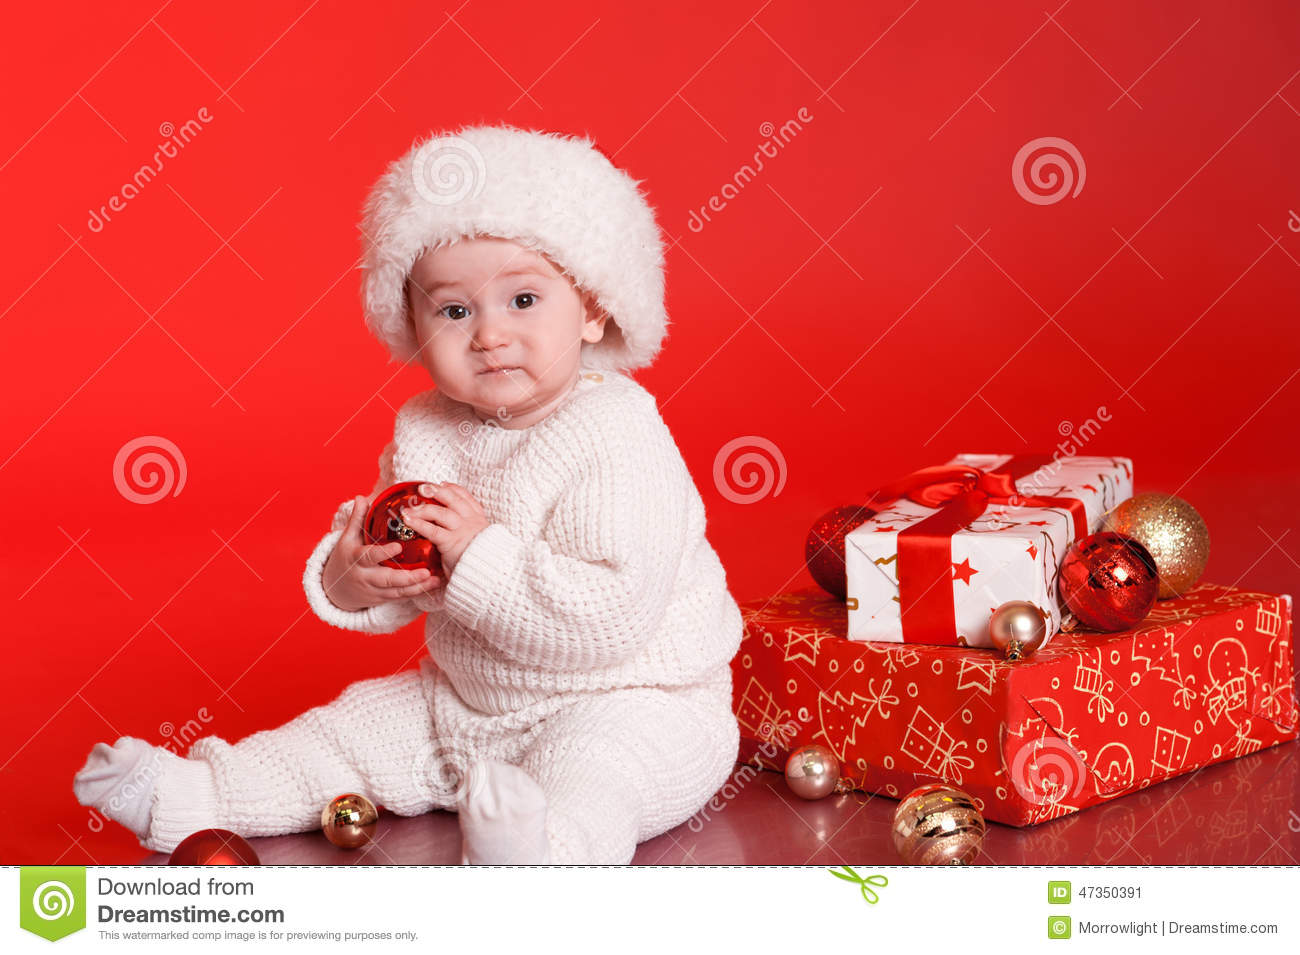 Cute Baby Boy With Christmas Decorations Over Red Stock